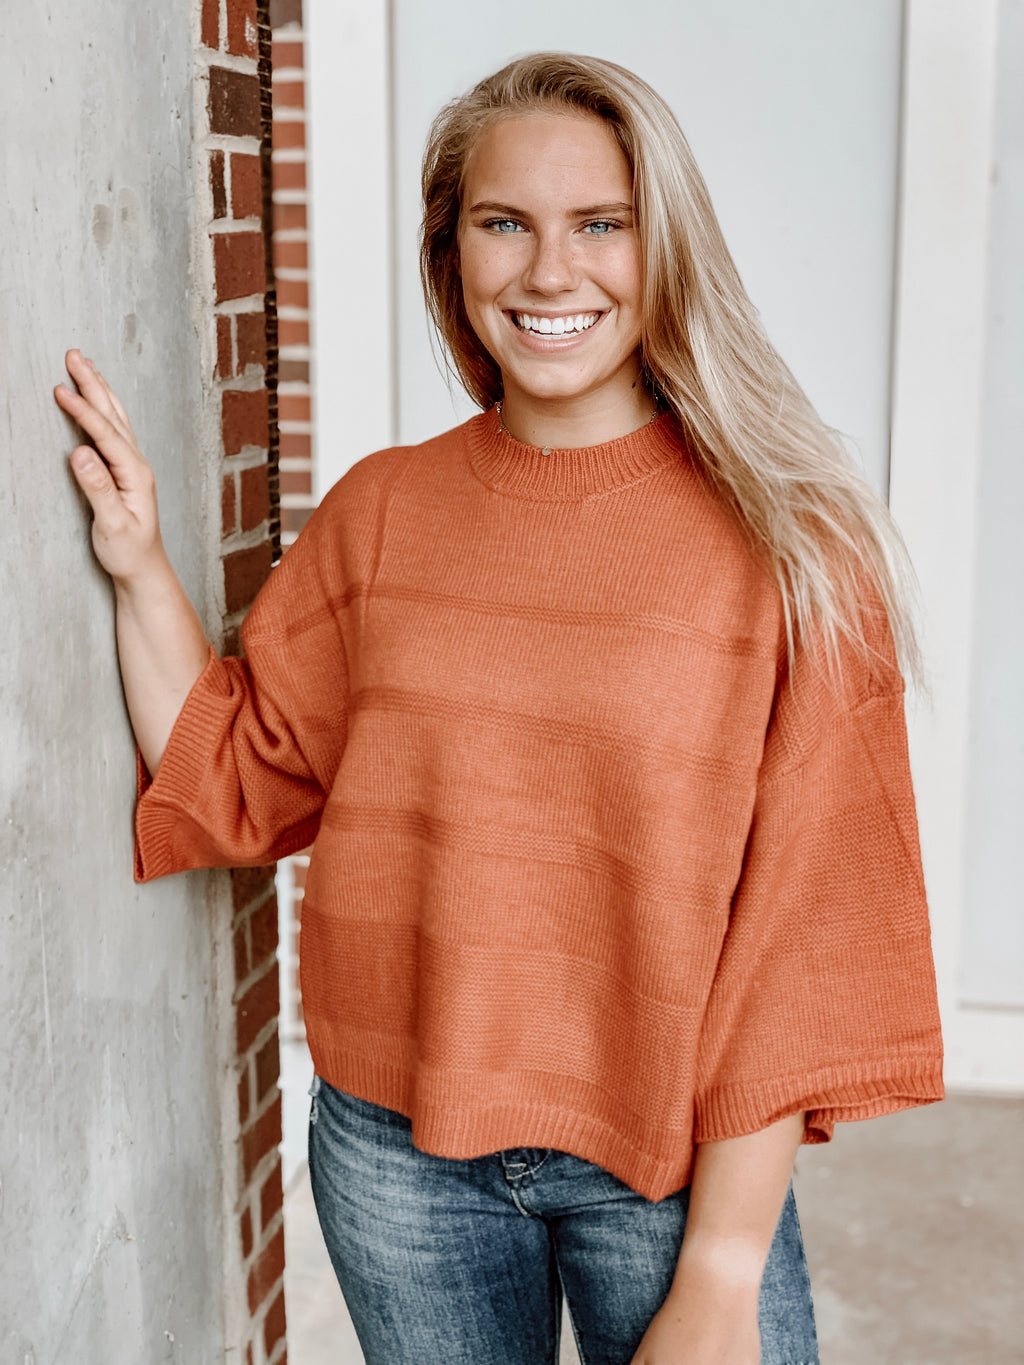 JACK BY BB DAKOTA - TUNE IN DROP OUT MOCK NECK SWEATER